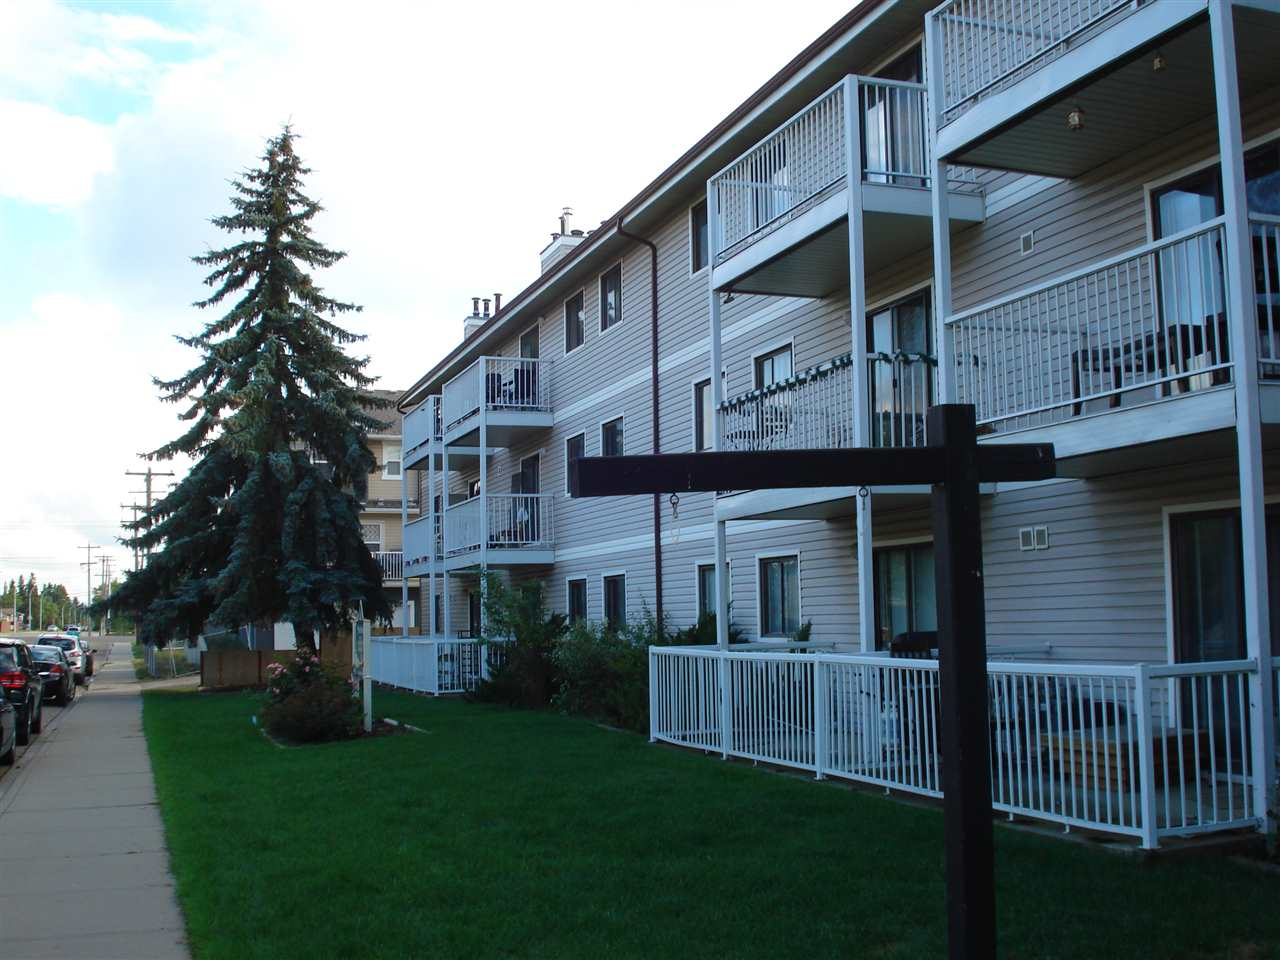 LOCATION LOCATION  LOCATION !! Lowest priced 1983 built in all of NW,SW,SE Edmonton. This gorgeous 2 bdrm top floor condo comes with huge balcony. A massive U shape large kitchen, adjacent dining, storage room, fireplace and dual access bathroom are additional exceptional features of this property. Master bdrm window and balcony are east facing for lots of sunshine and bdrm #2 has a nice far stretching view of the north part of our city. This property has just received new paint, new flooring and it is move in ready. All appliances also are in excellent condition. This property is perfectly nestled right at the heart of the mature/affluent Britainia Youngstown. Shopping, schools, bus service, hospitals, recreation & LRT (valley Line) all just within very close walking distance. Priced right at $133,900.